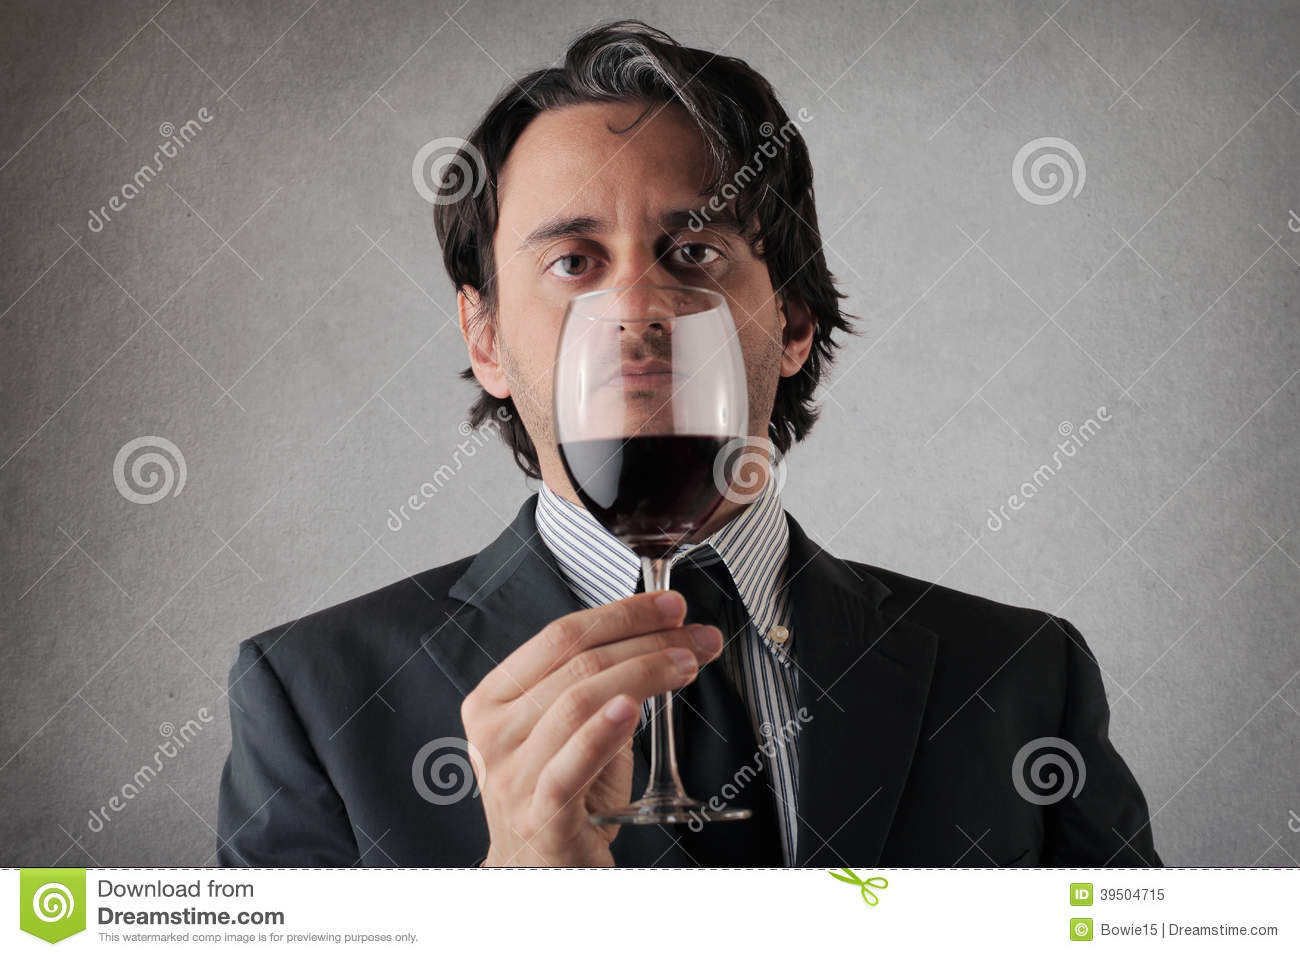 Serious businessman with a glass of wine